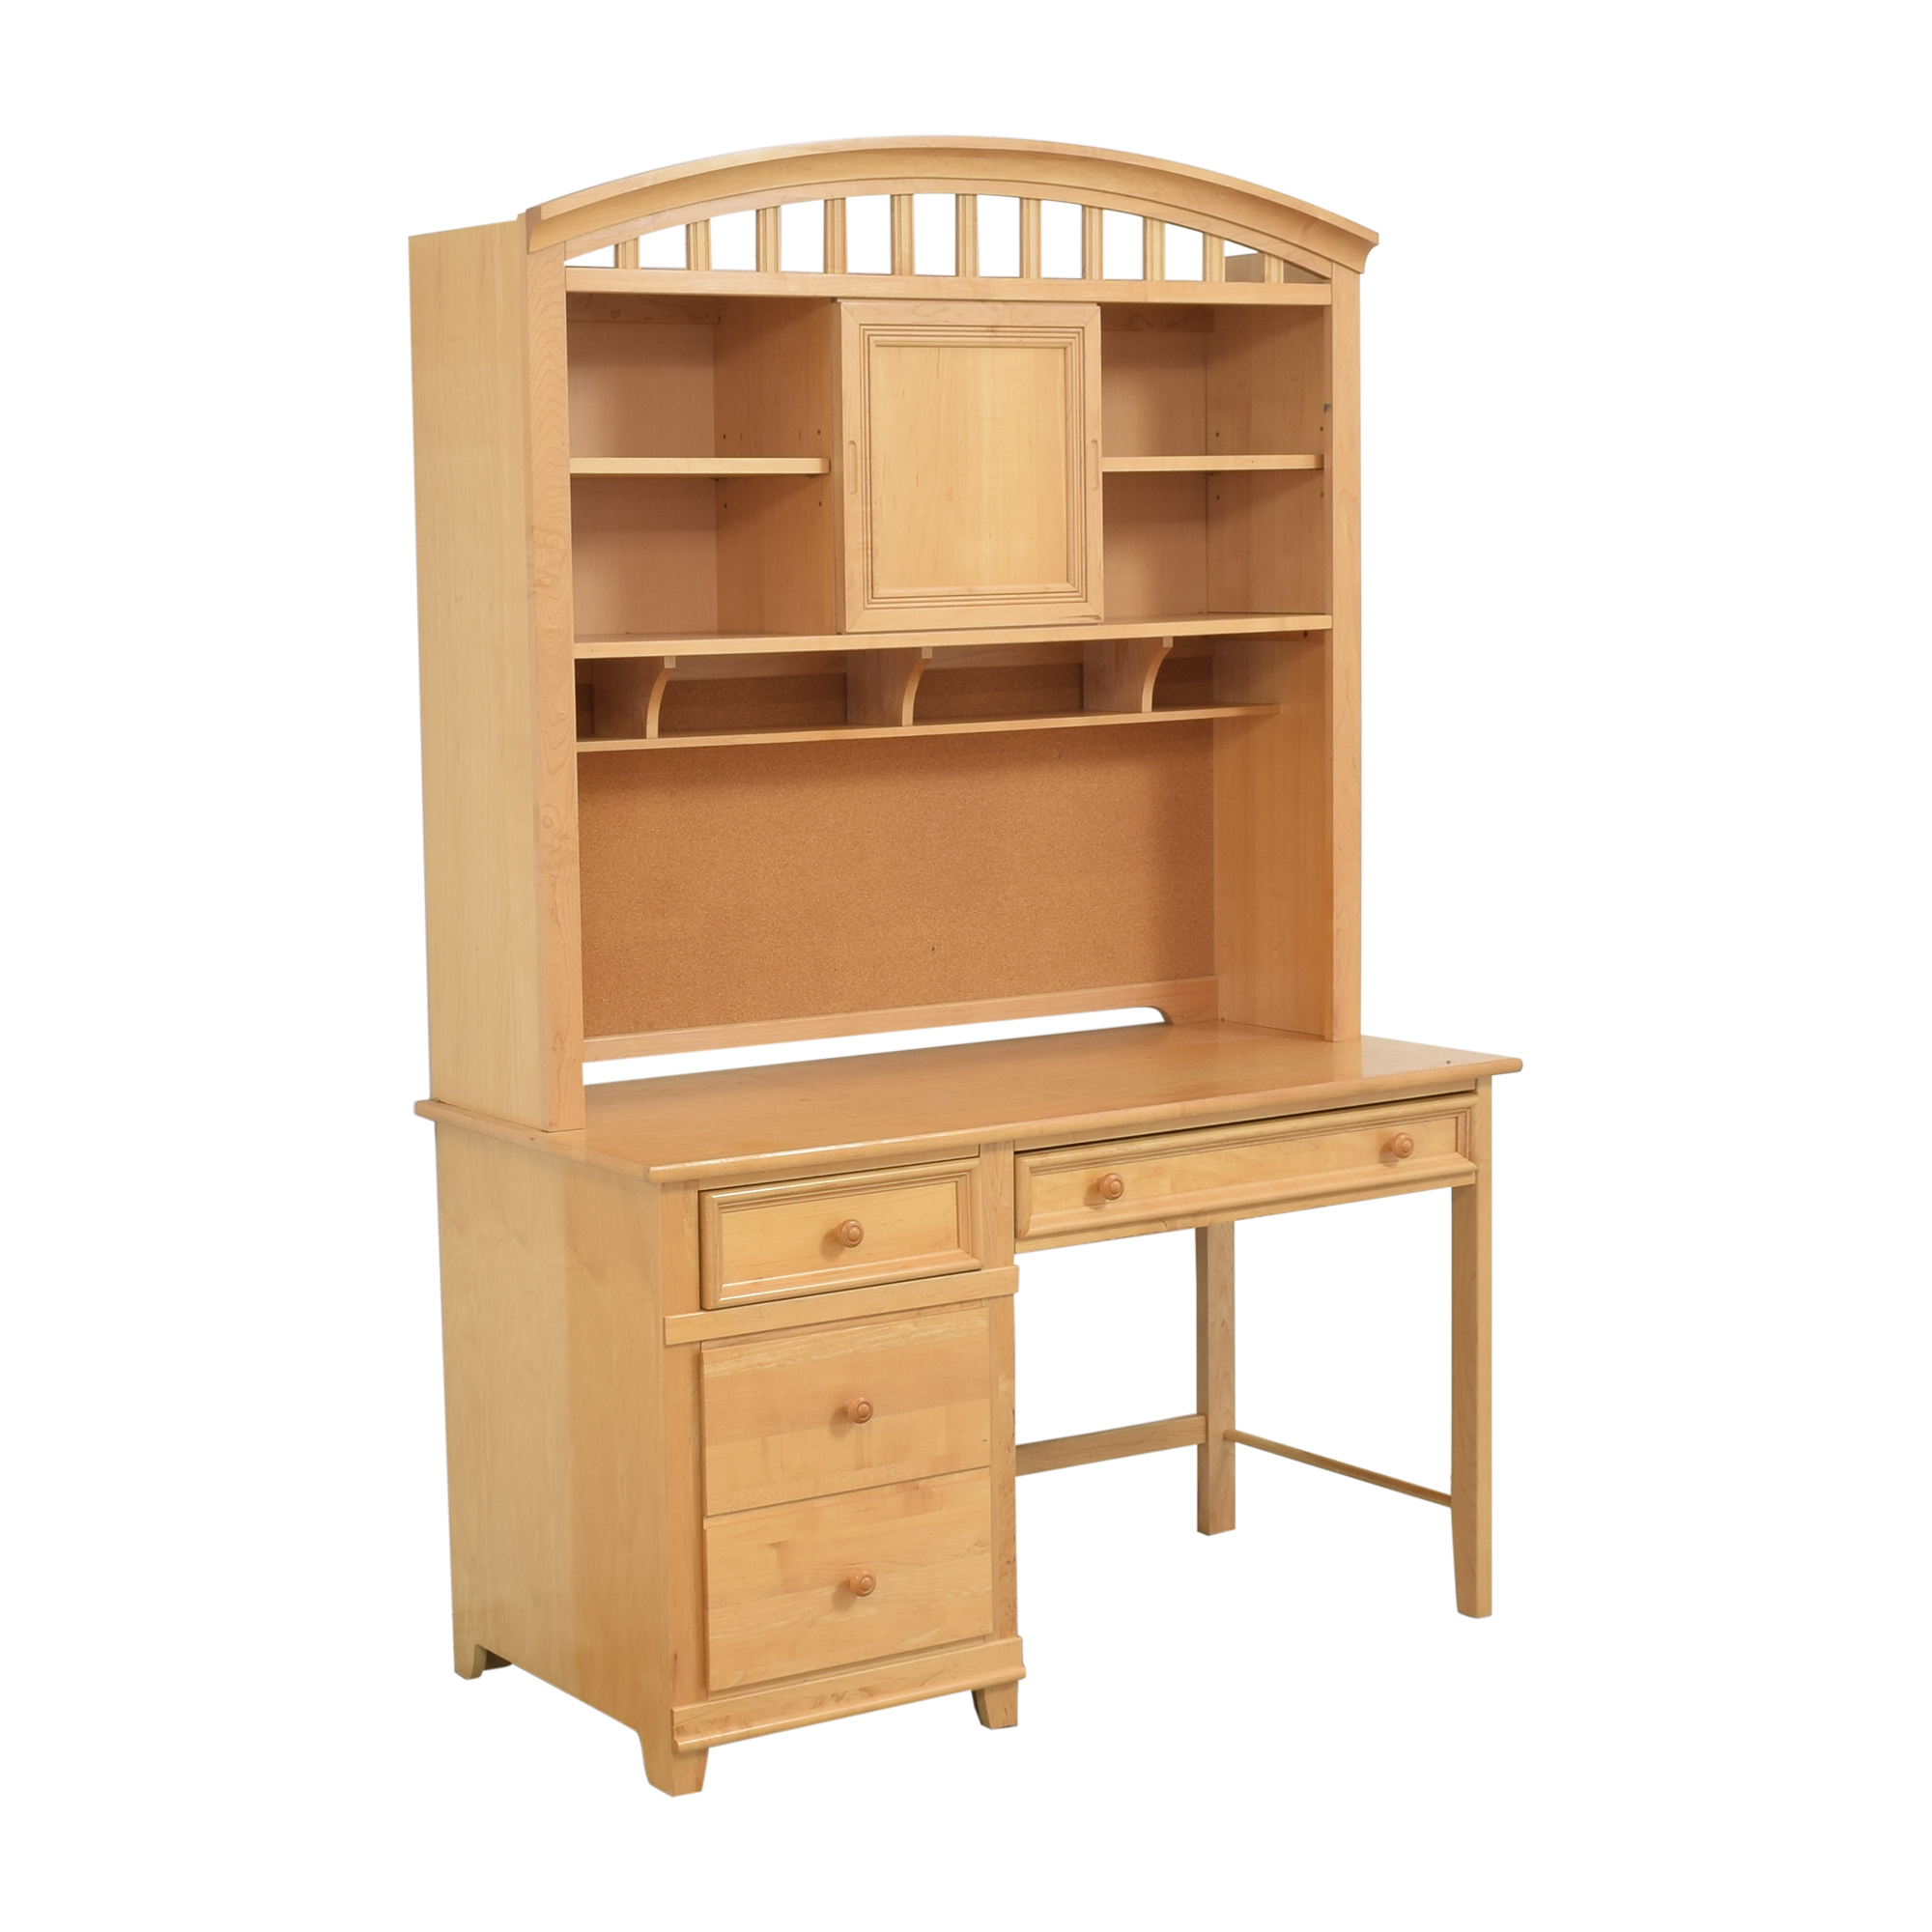 Stanley Furniture Stanley Furniture Young America Desk with Hutch ma